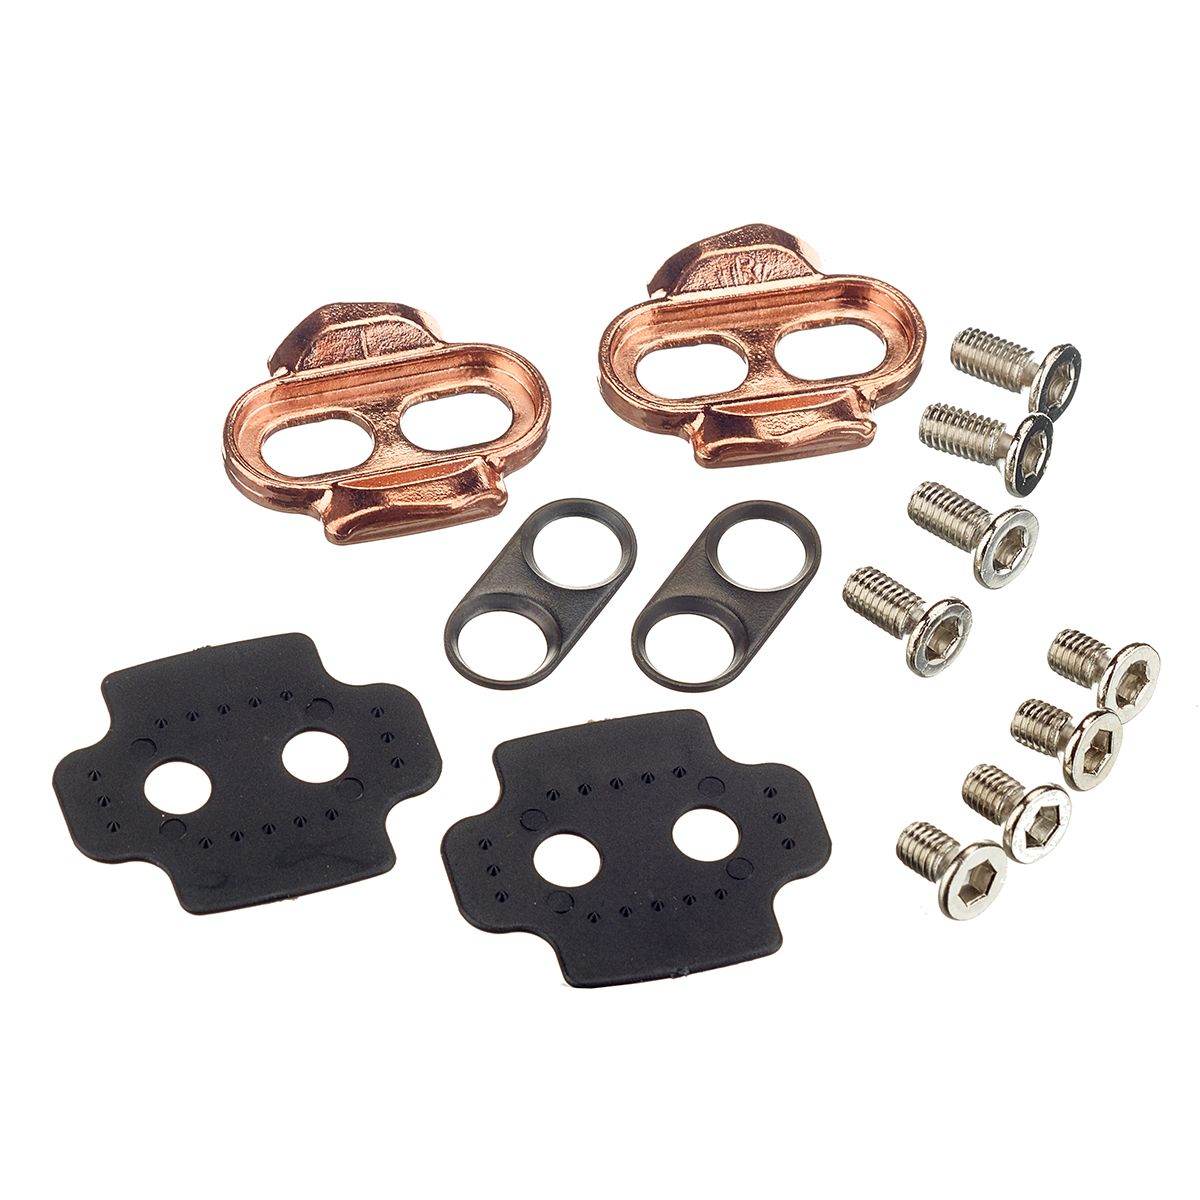 Crankbrothers Easy Cleats | Pedal cleats